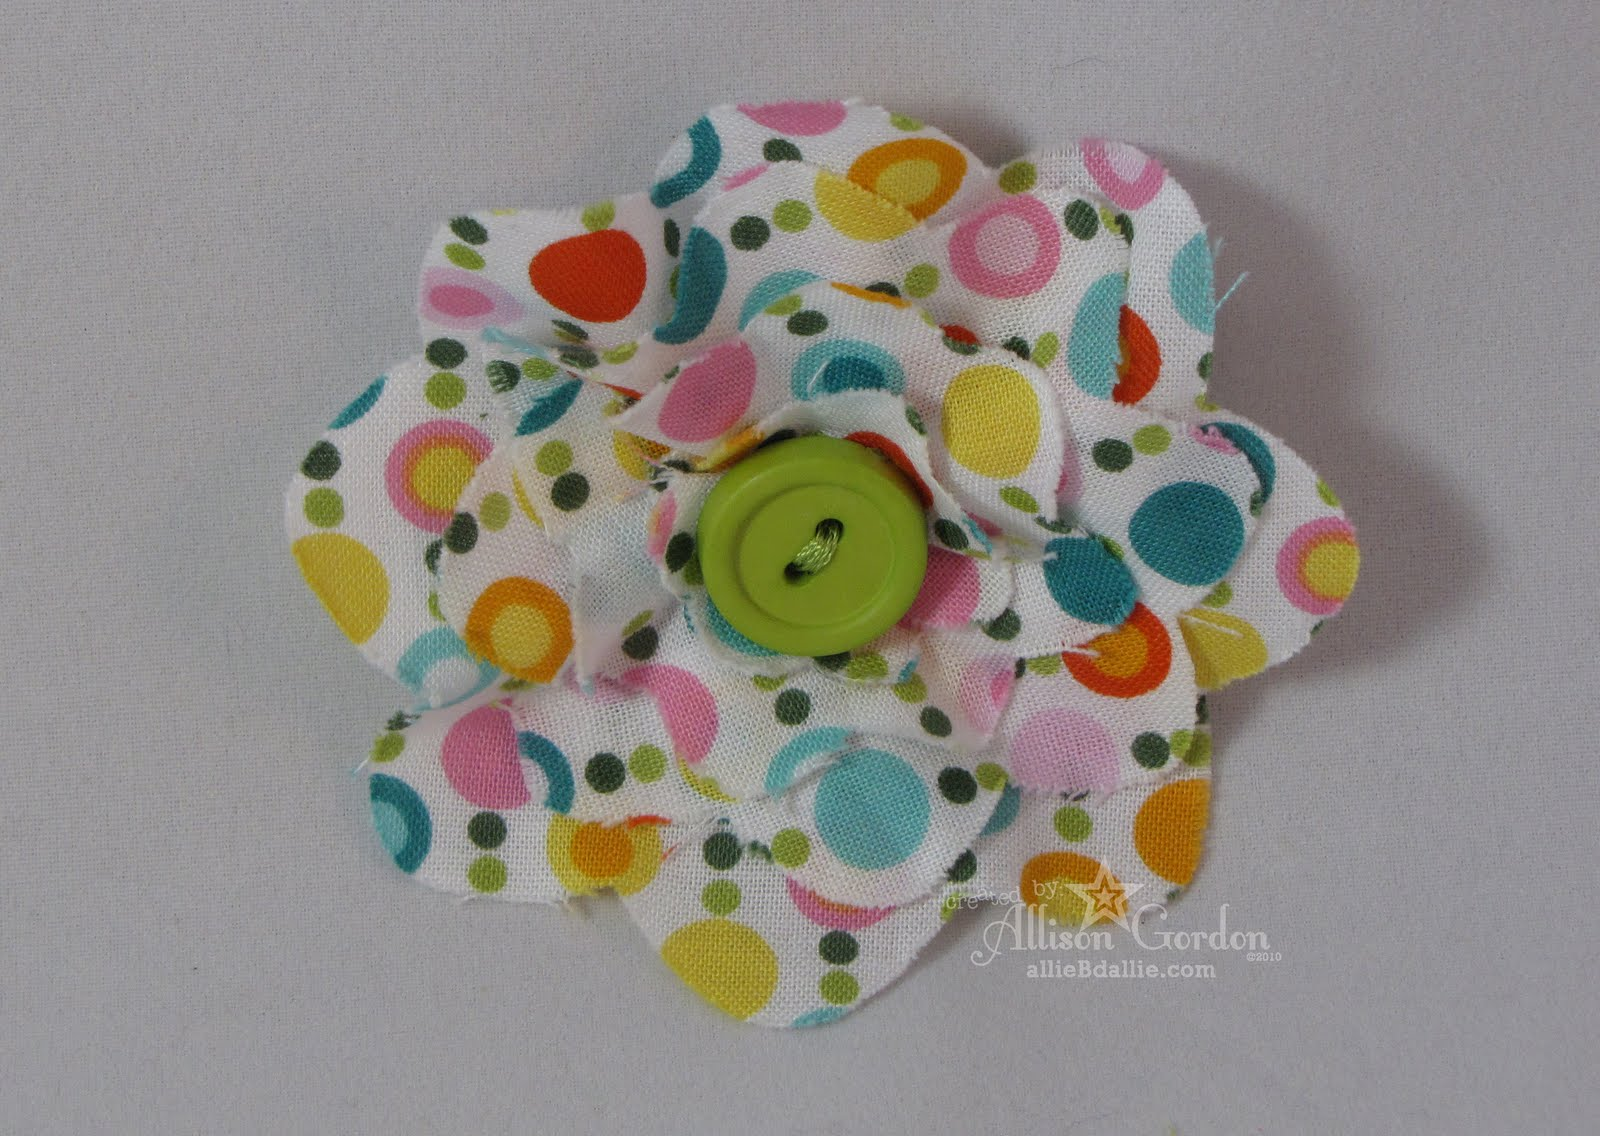 Sew Can Do How To Make Die Cut Fabric Flowers